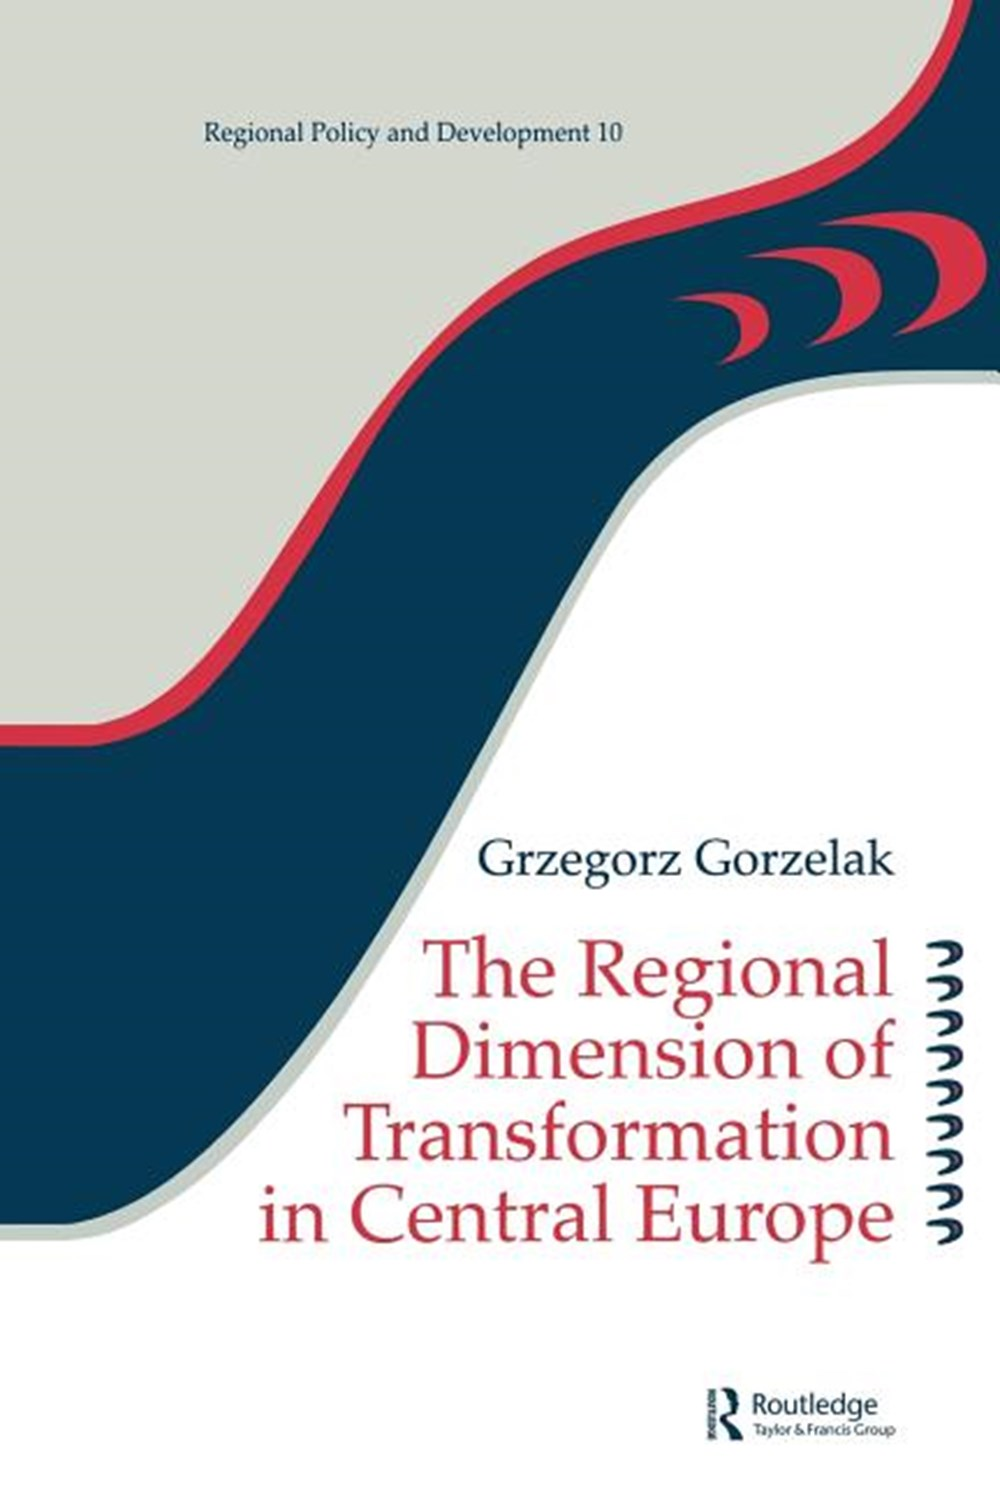 Regional Dimension of Transformation in Central Europe